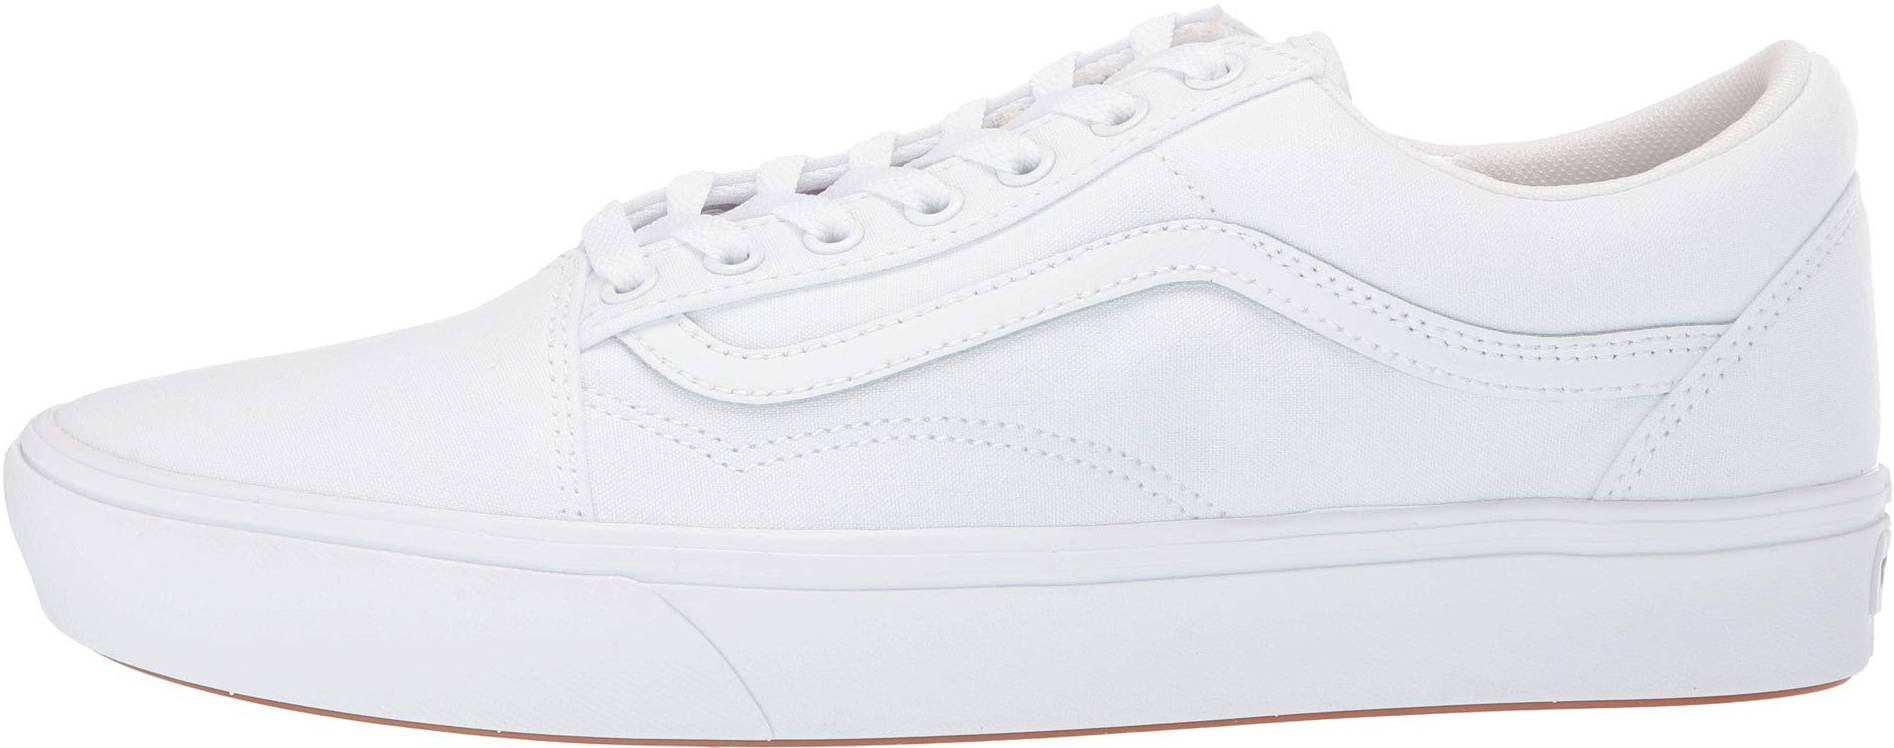 Save 10% on White Vans Sneakers (22